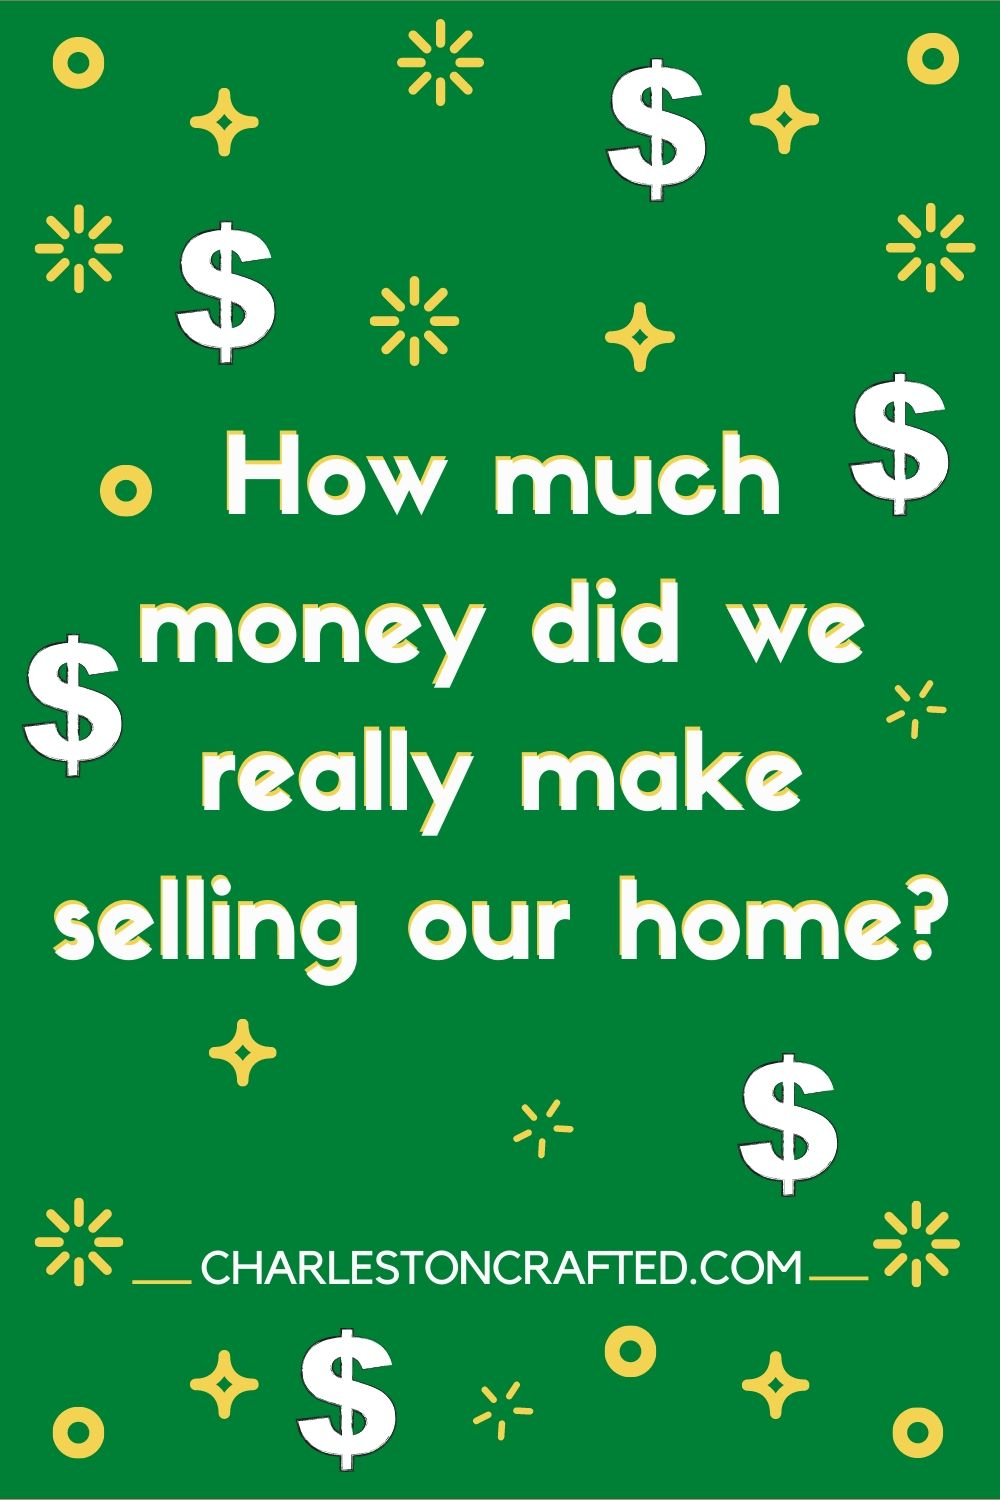 how much money did we really make selling our home_